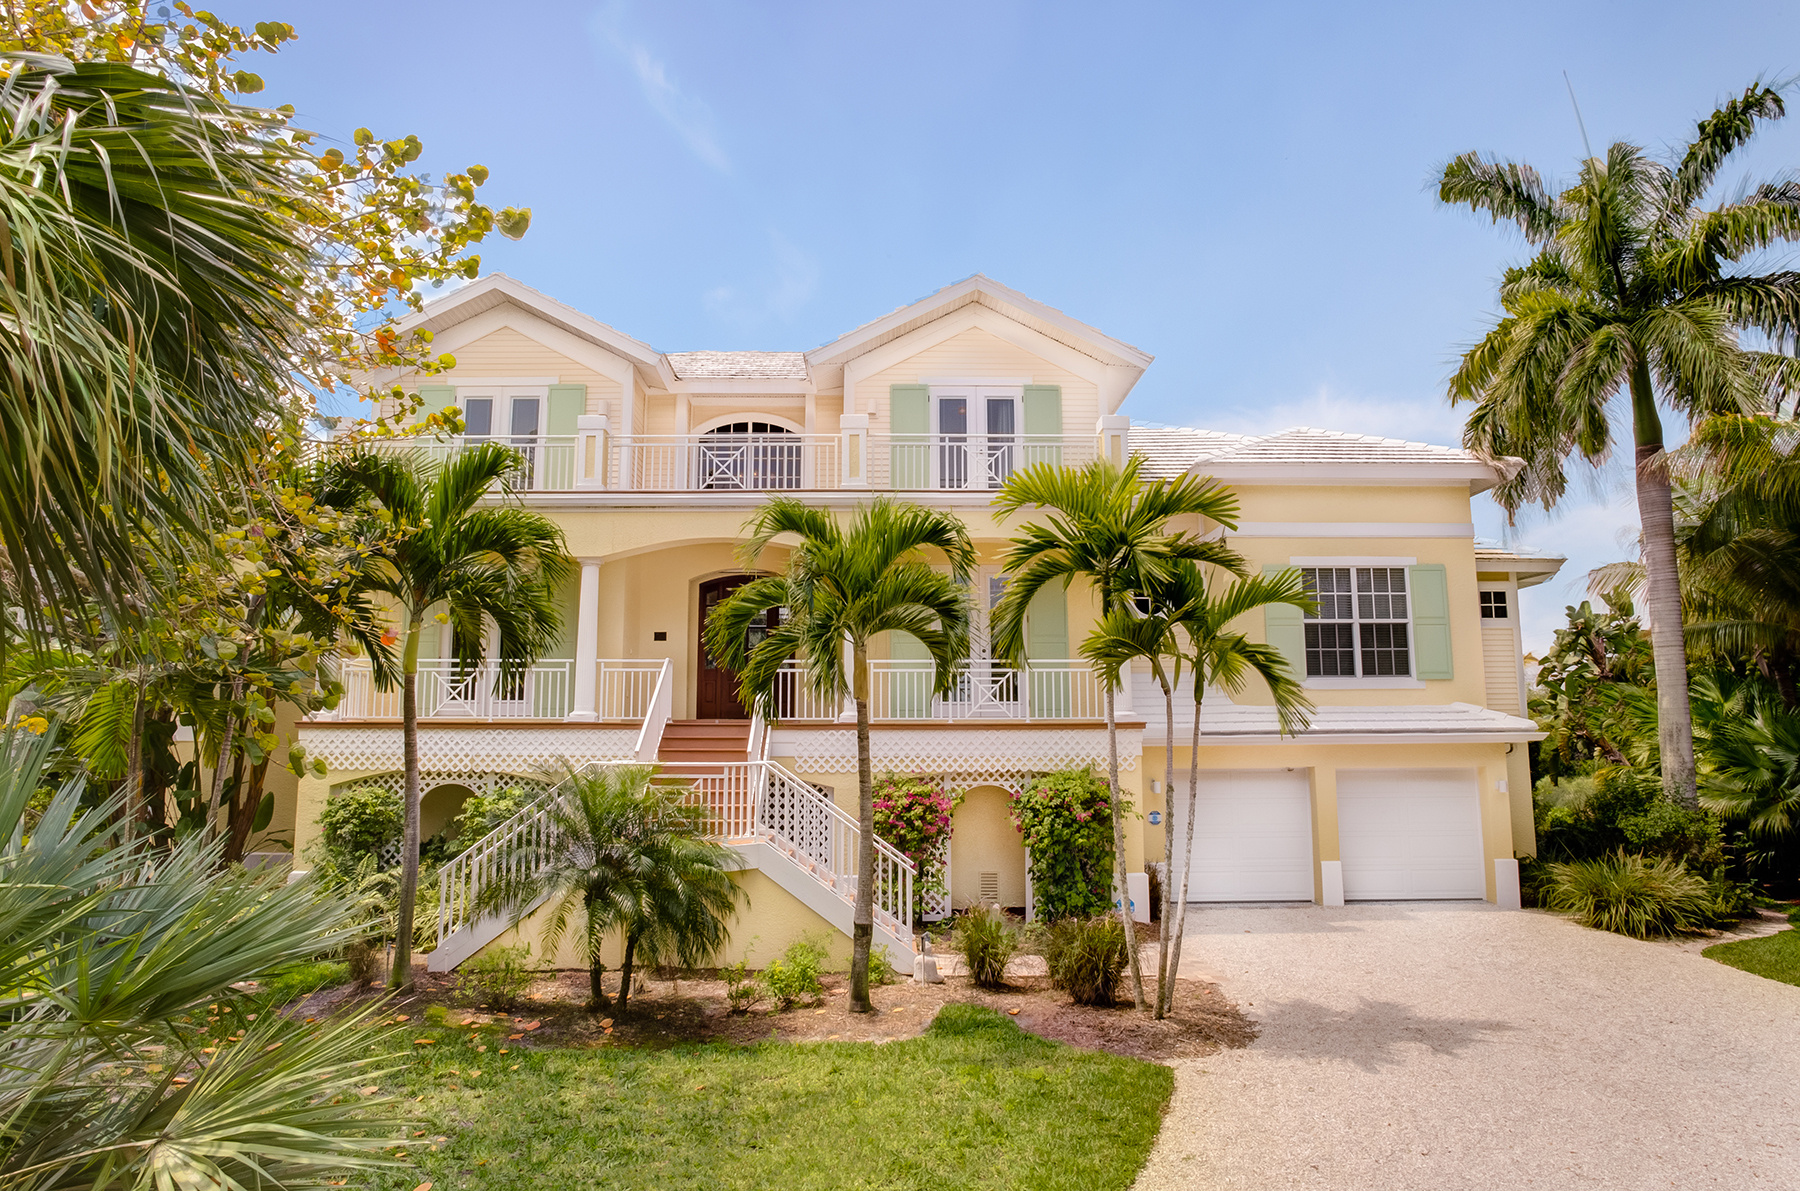 Casa Unifamiliar por un Venta en SANIBEL 1360 Eagle Run Dr Sanibel, Florida, 33957 Estados Unidos